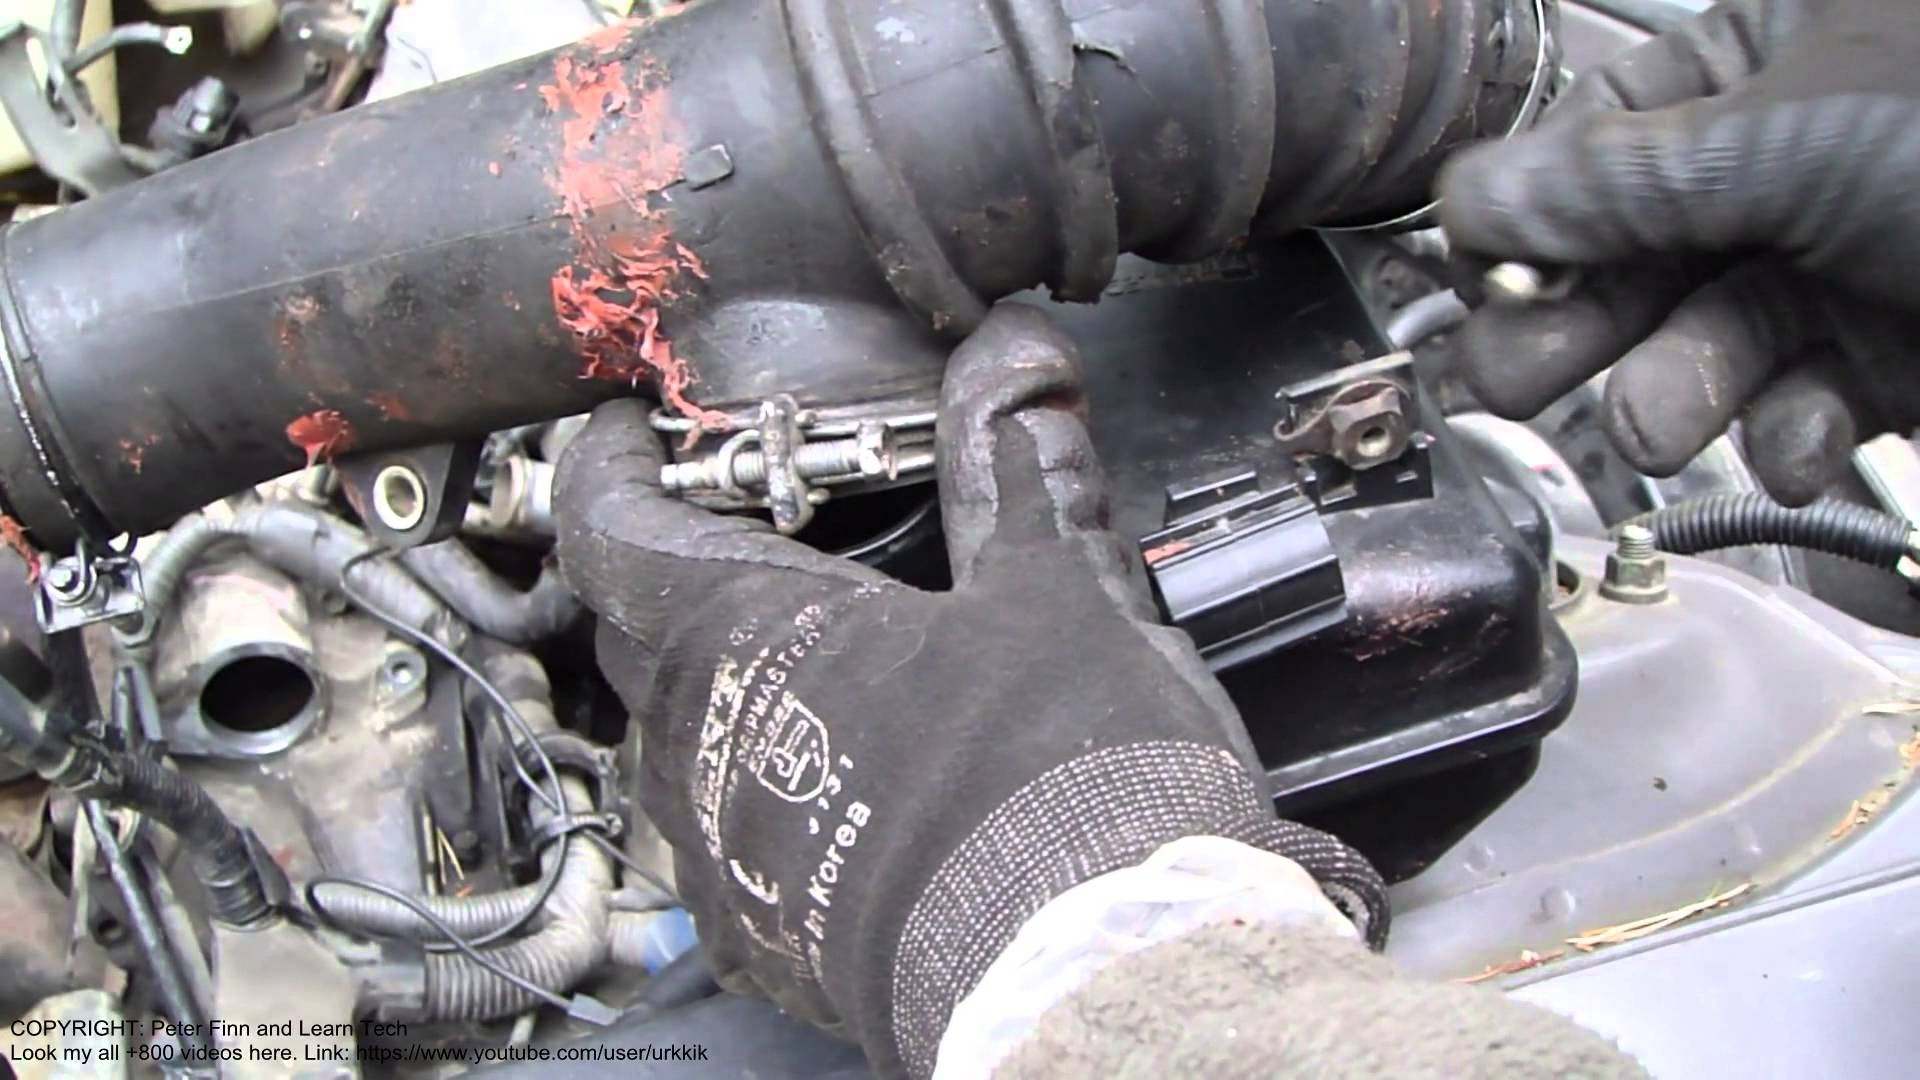 2001 toyota camry 4 cylinder engine diagram my wiring Toyota Belt Tensioner Diagram 2001 toyota camry 4 cylinder engine diagram how to disassemble intake hose toyota camry 2 2 liter engine years of 2001 toyota camry 4 cylinder engine diagram